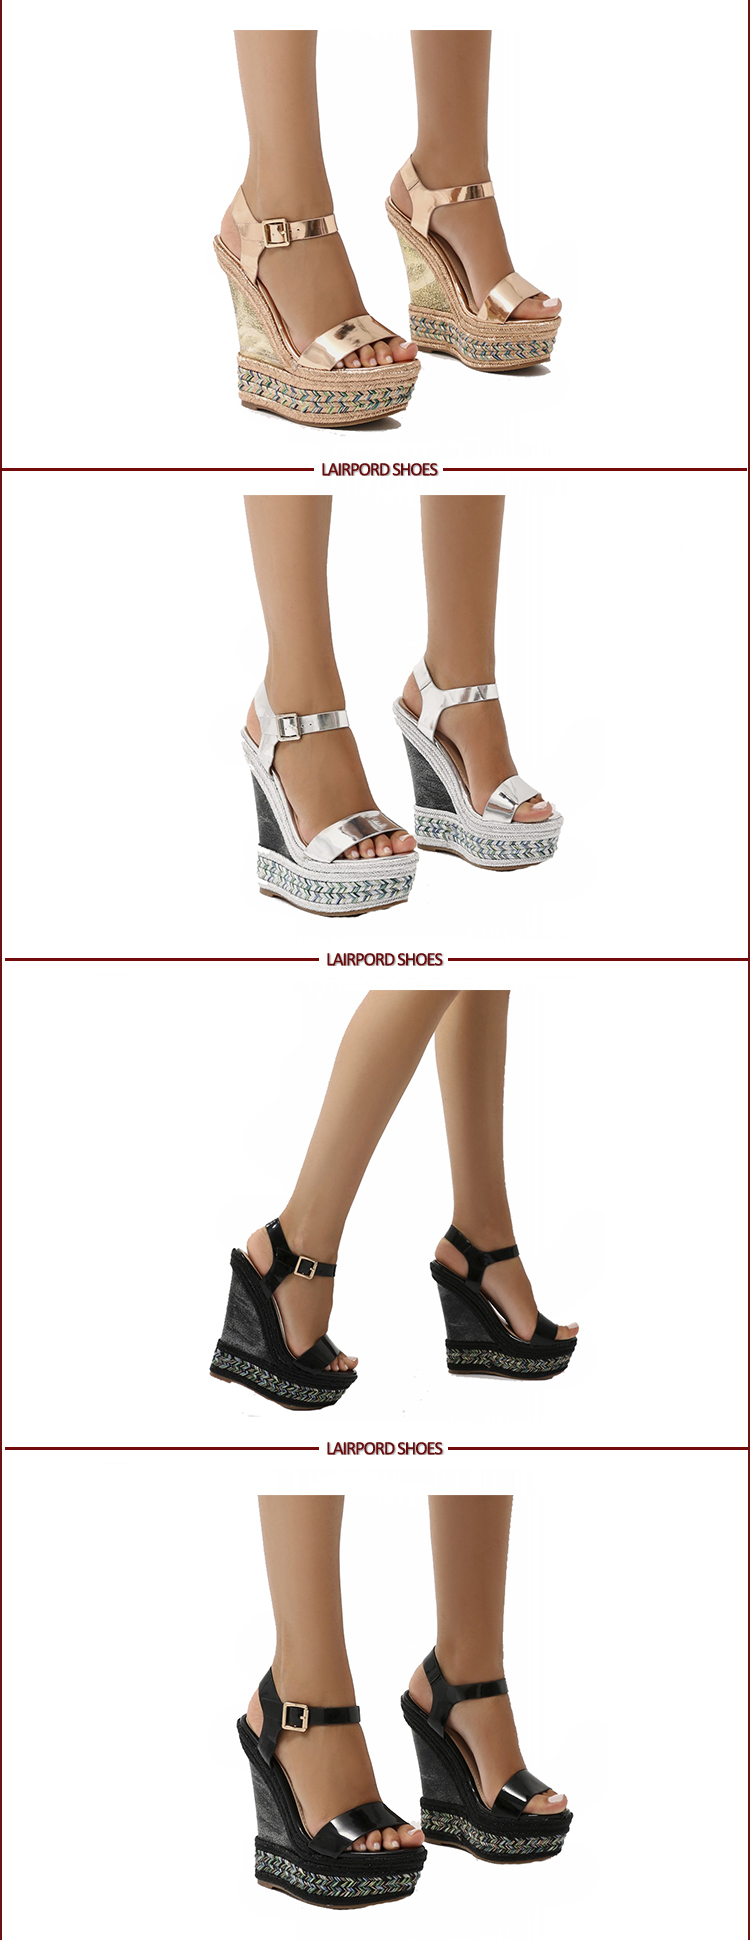 new style wedges